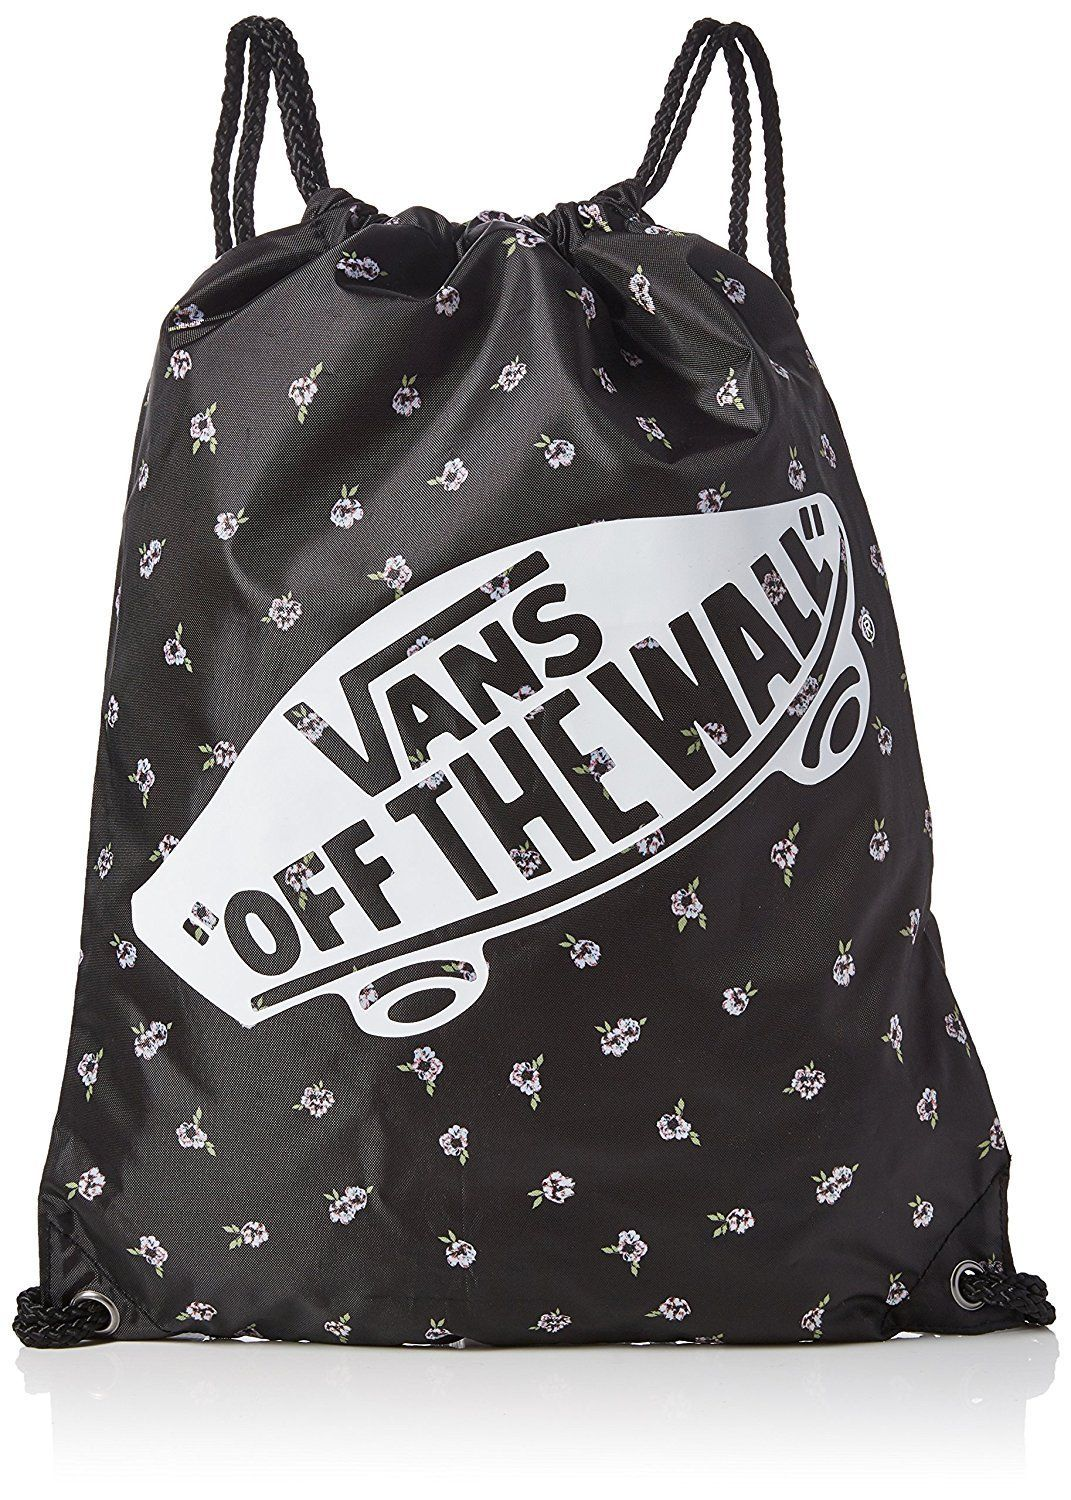 ac38bfa73e4 Vans Benched Bag Fall Floral in 2019 | School supplies | Bench bags ...